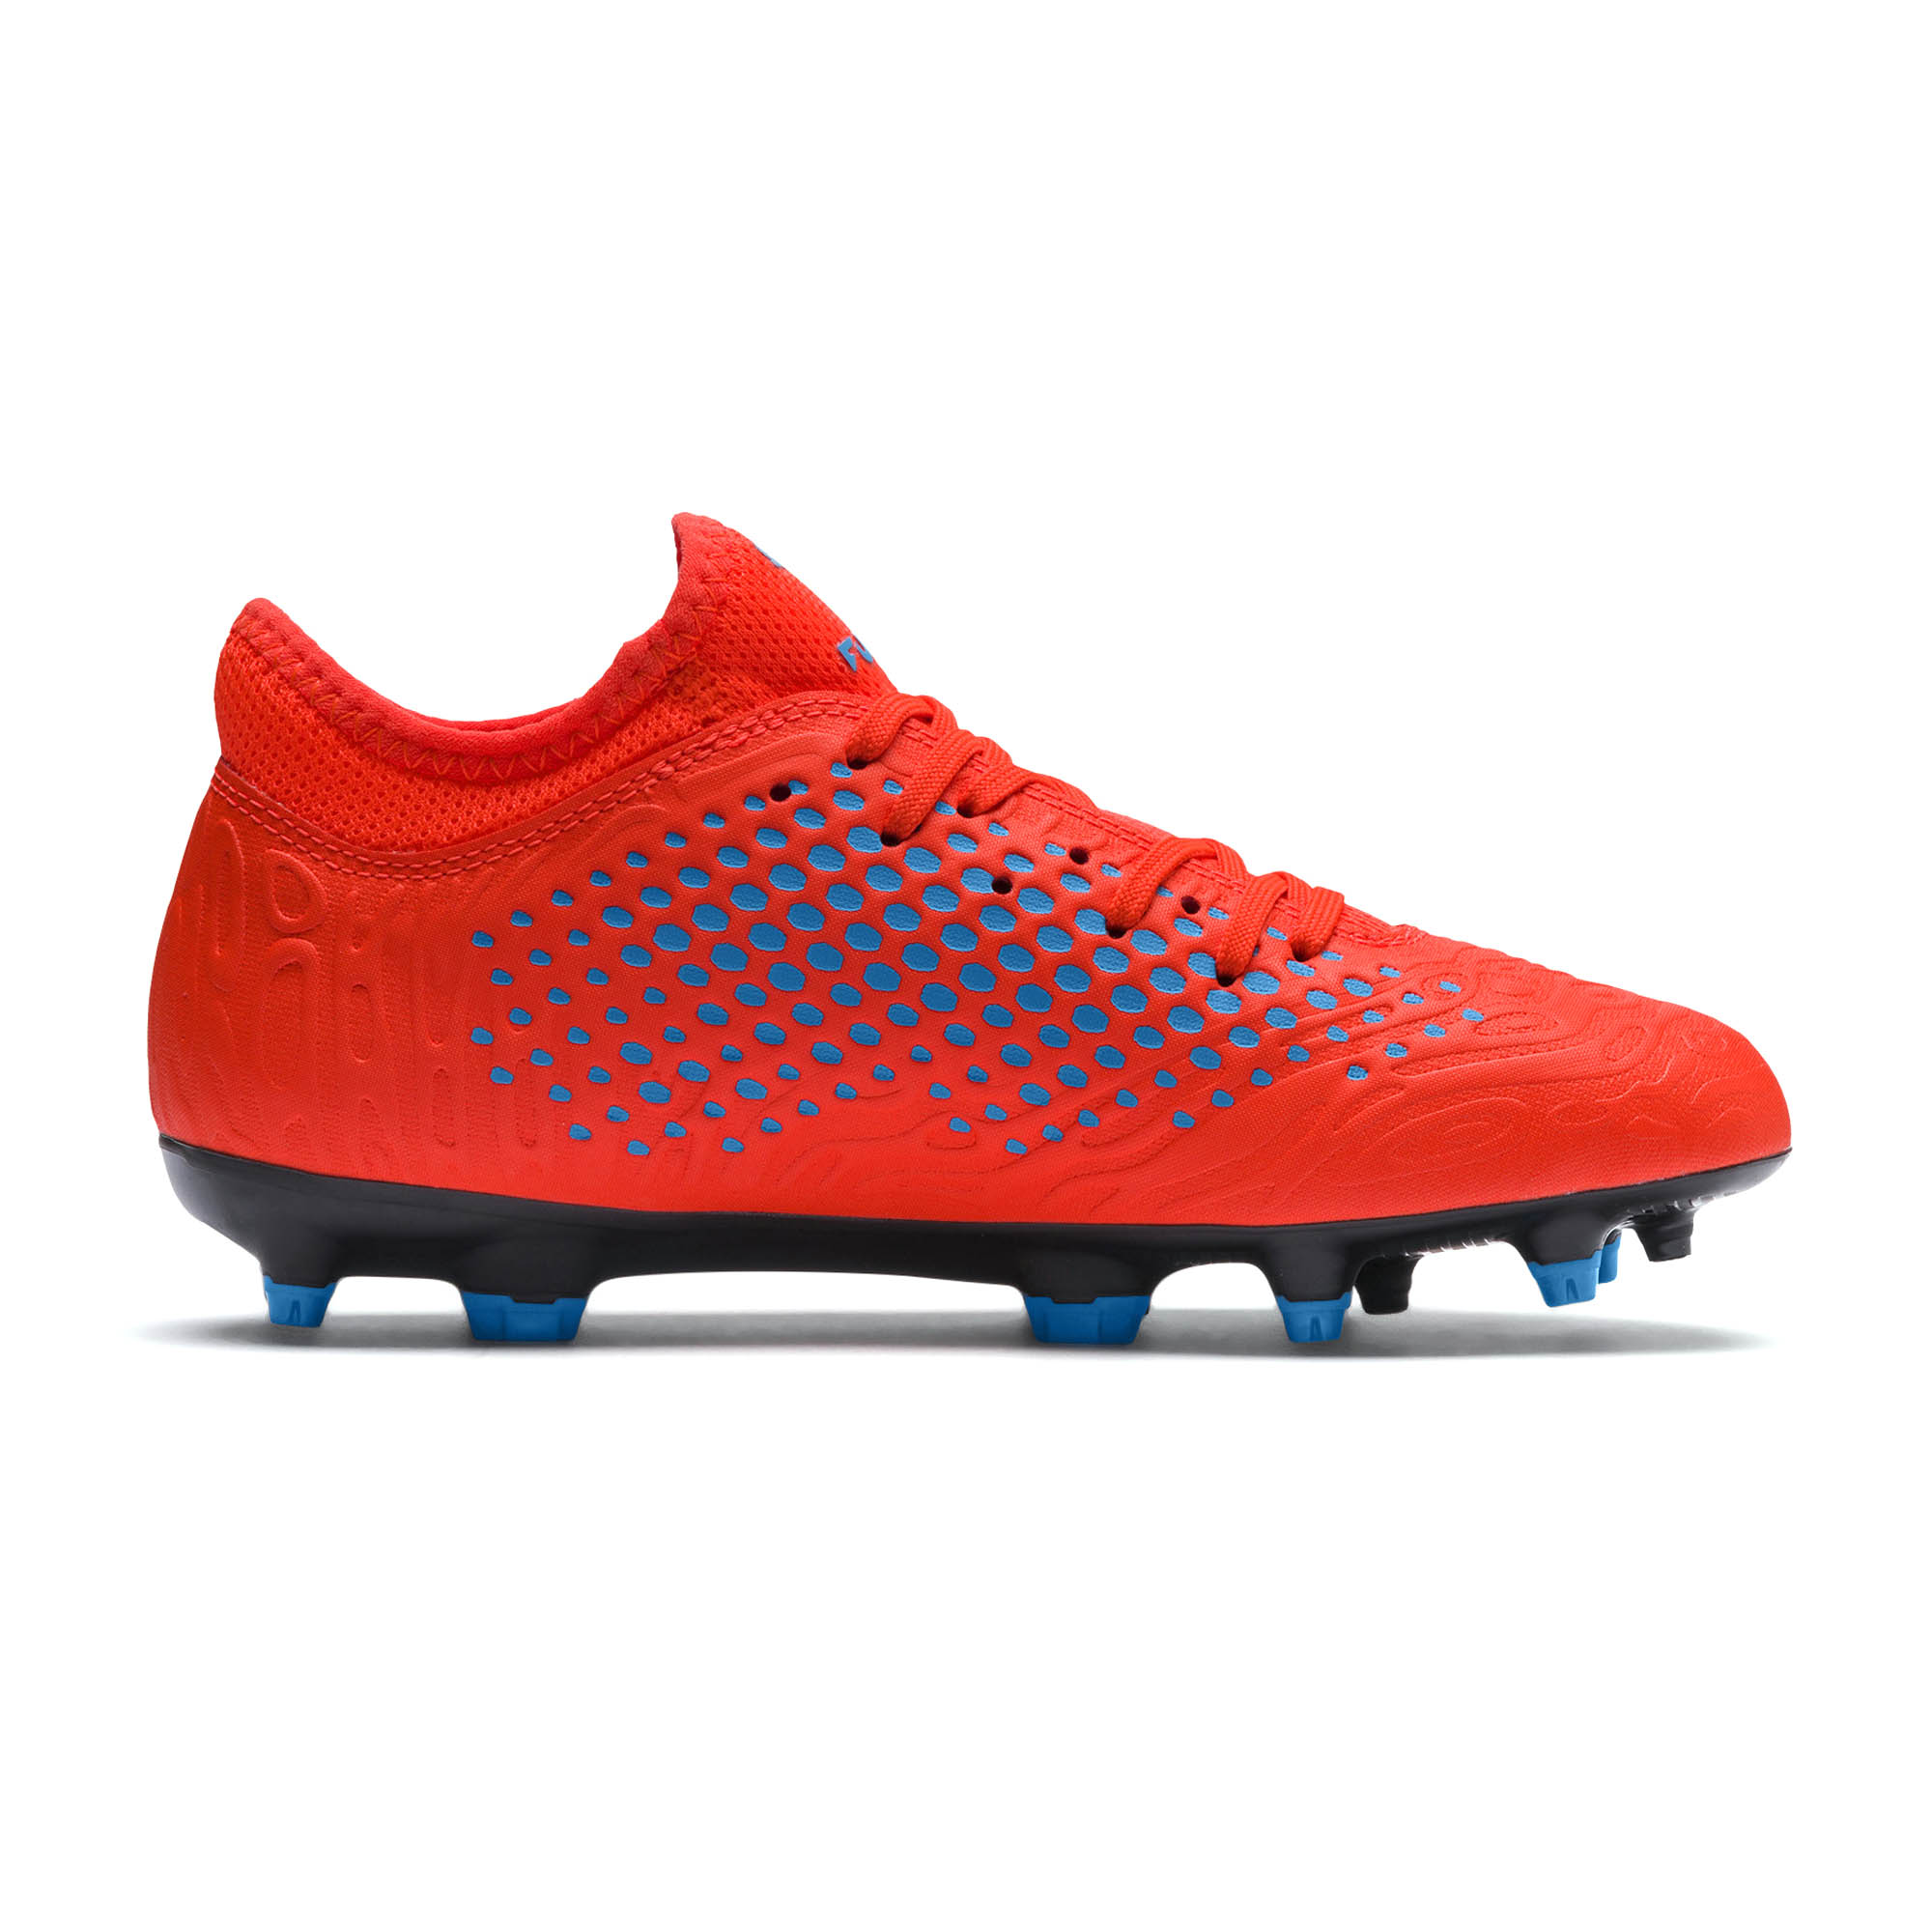 e3db178ee098 Puma Future 2.4 FG AG Firm Ground Kids Football Boot Power Up Red Blue